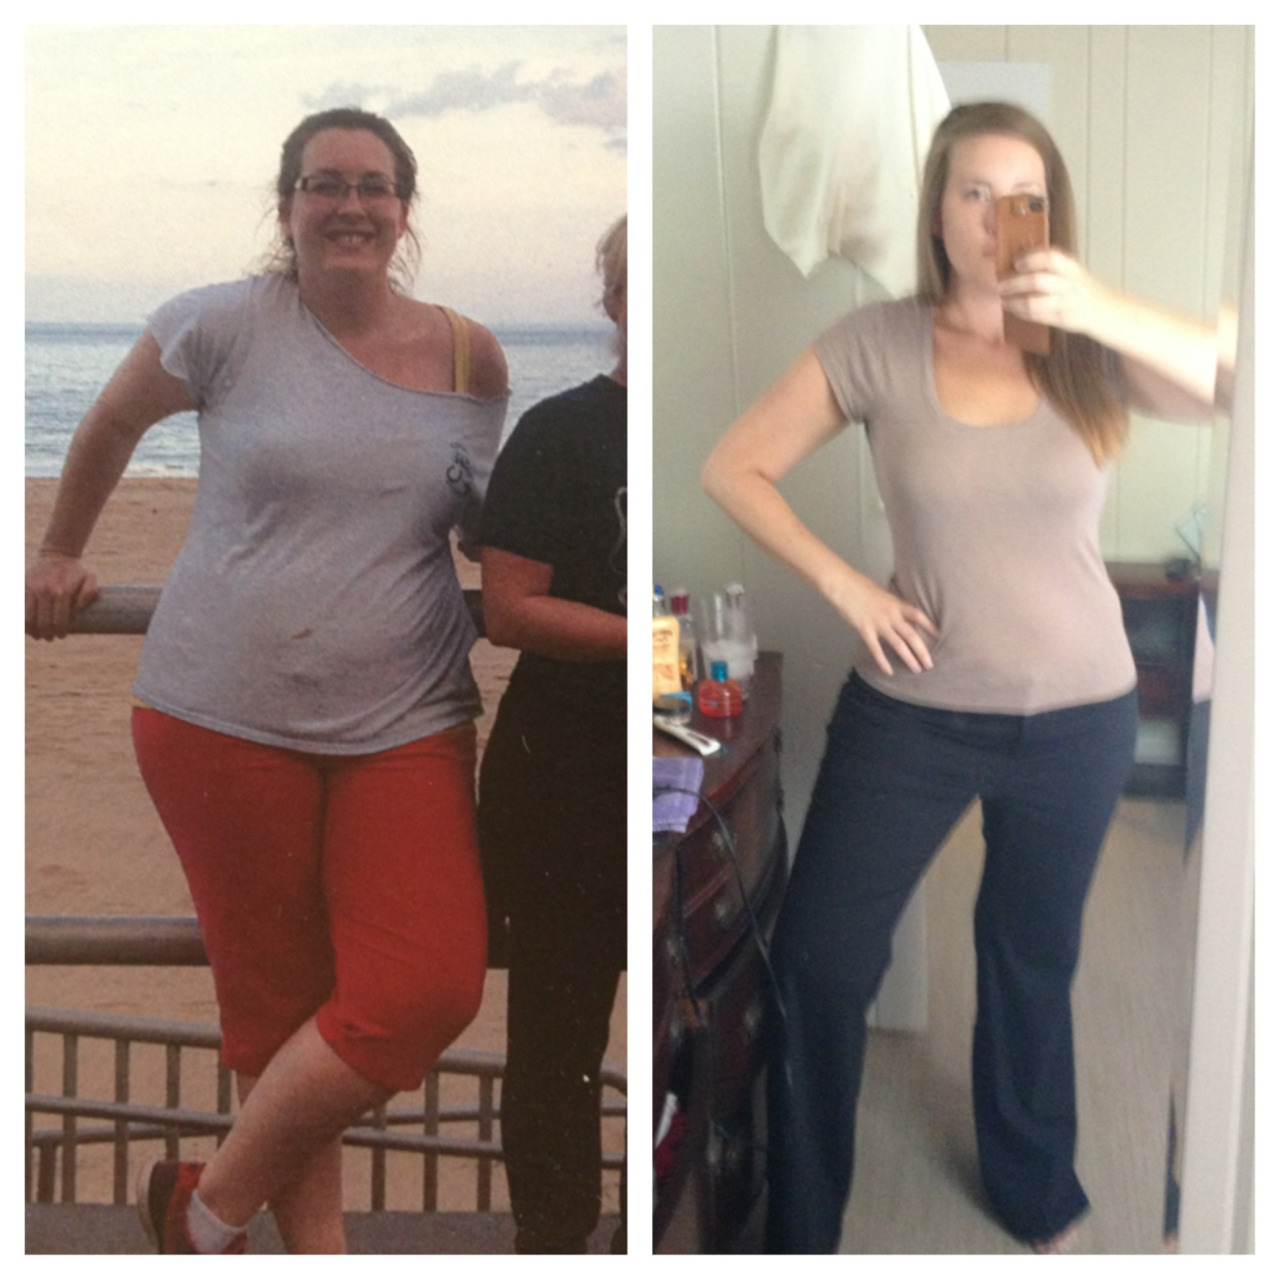 Nicole - 40 pounds, gone!